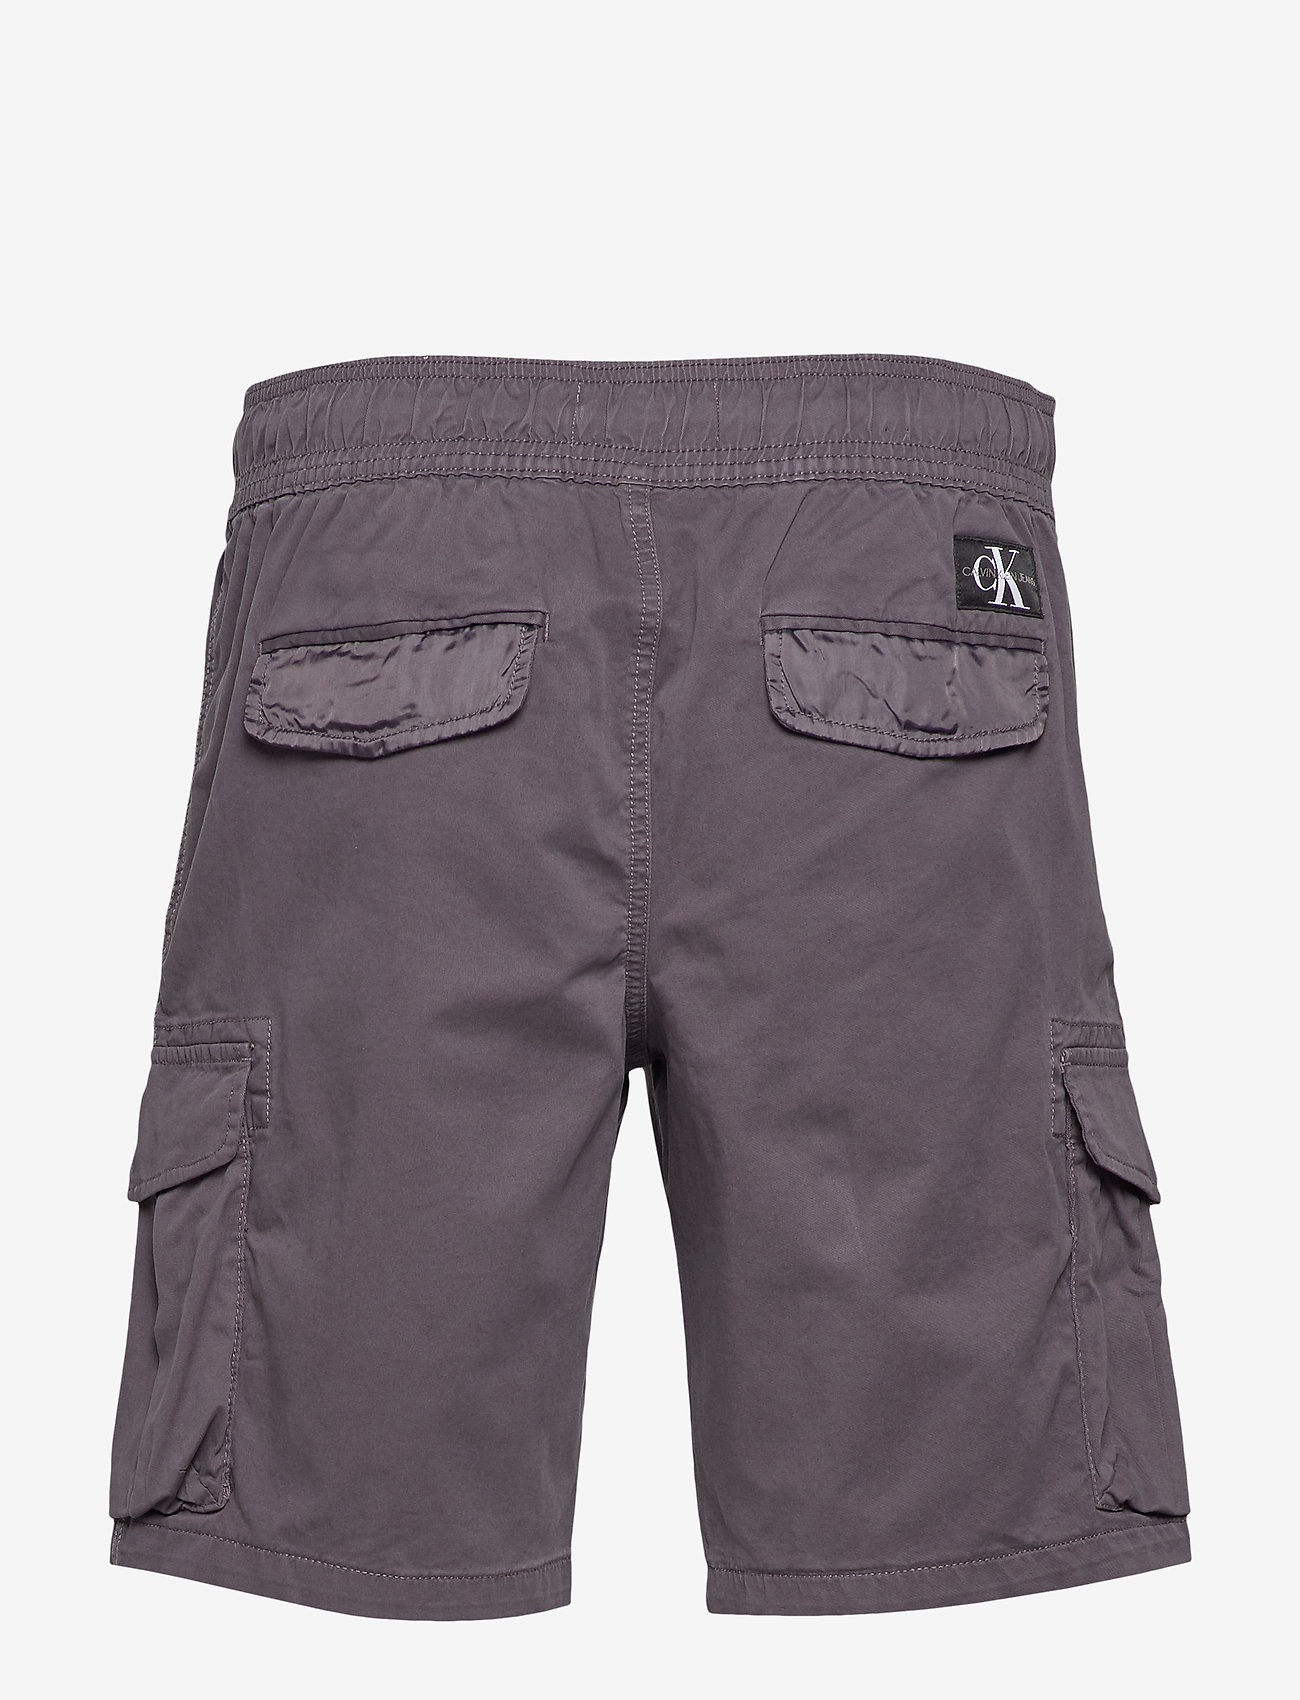 Calvin Klein Jeans - SIMPLE WASHED CARGO SHORT - cargo shorts - abstract grey - 1